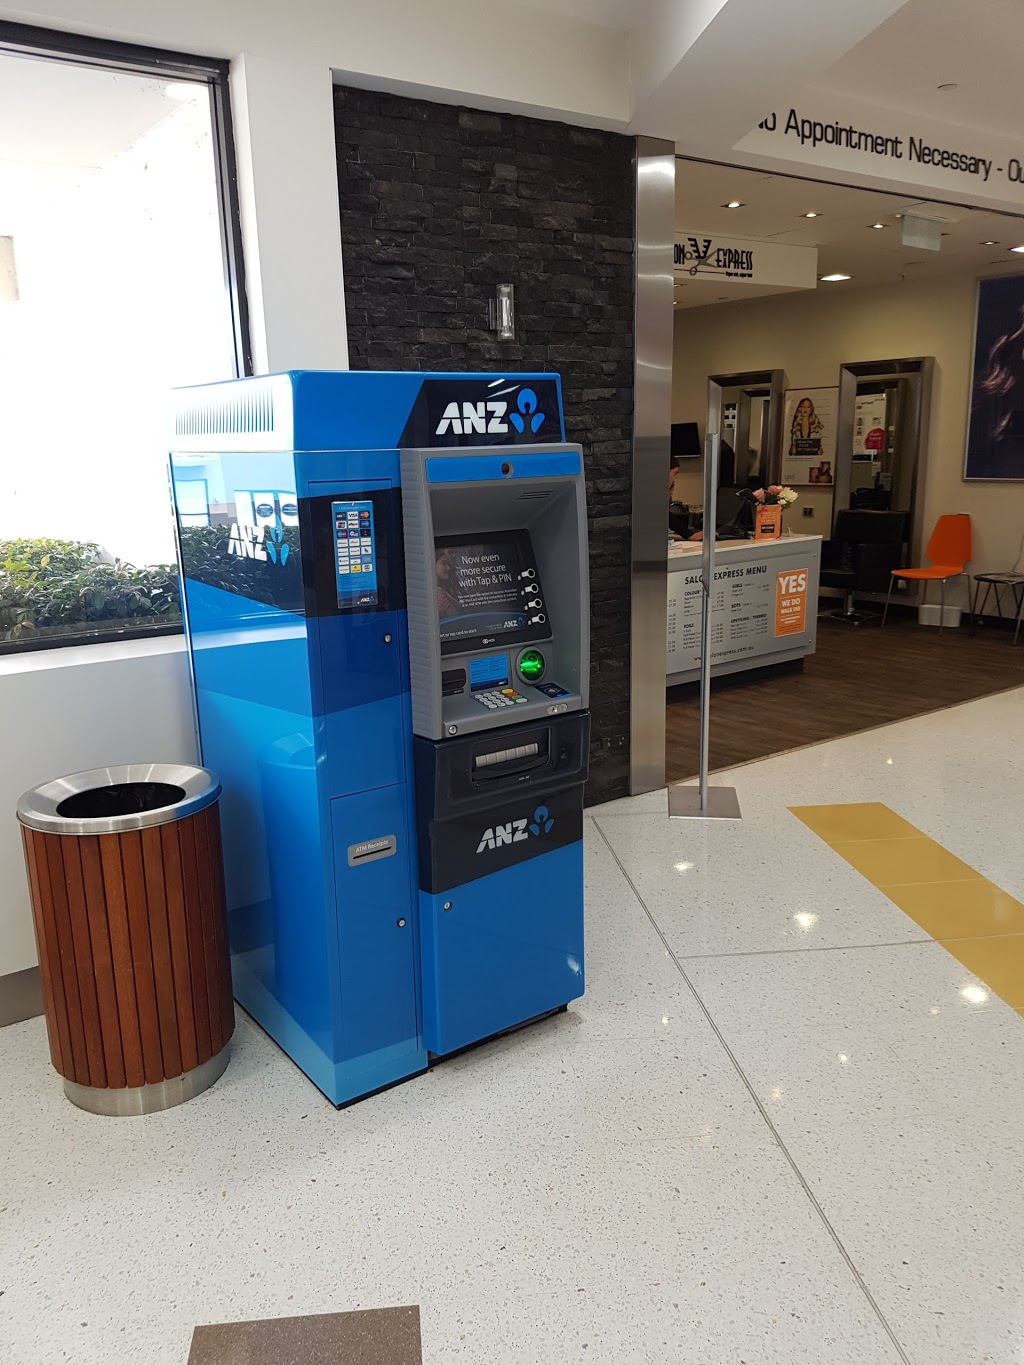 ANZ ATM The Mezz Sc | atm | Hawaiian Mezz Shopping Centre, 148 Scarborough Beach Rd, Mount Hawthorn WA 6016, Australia | 131314 OR +61 131314